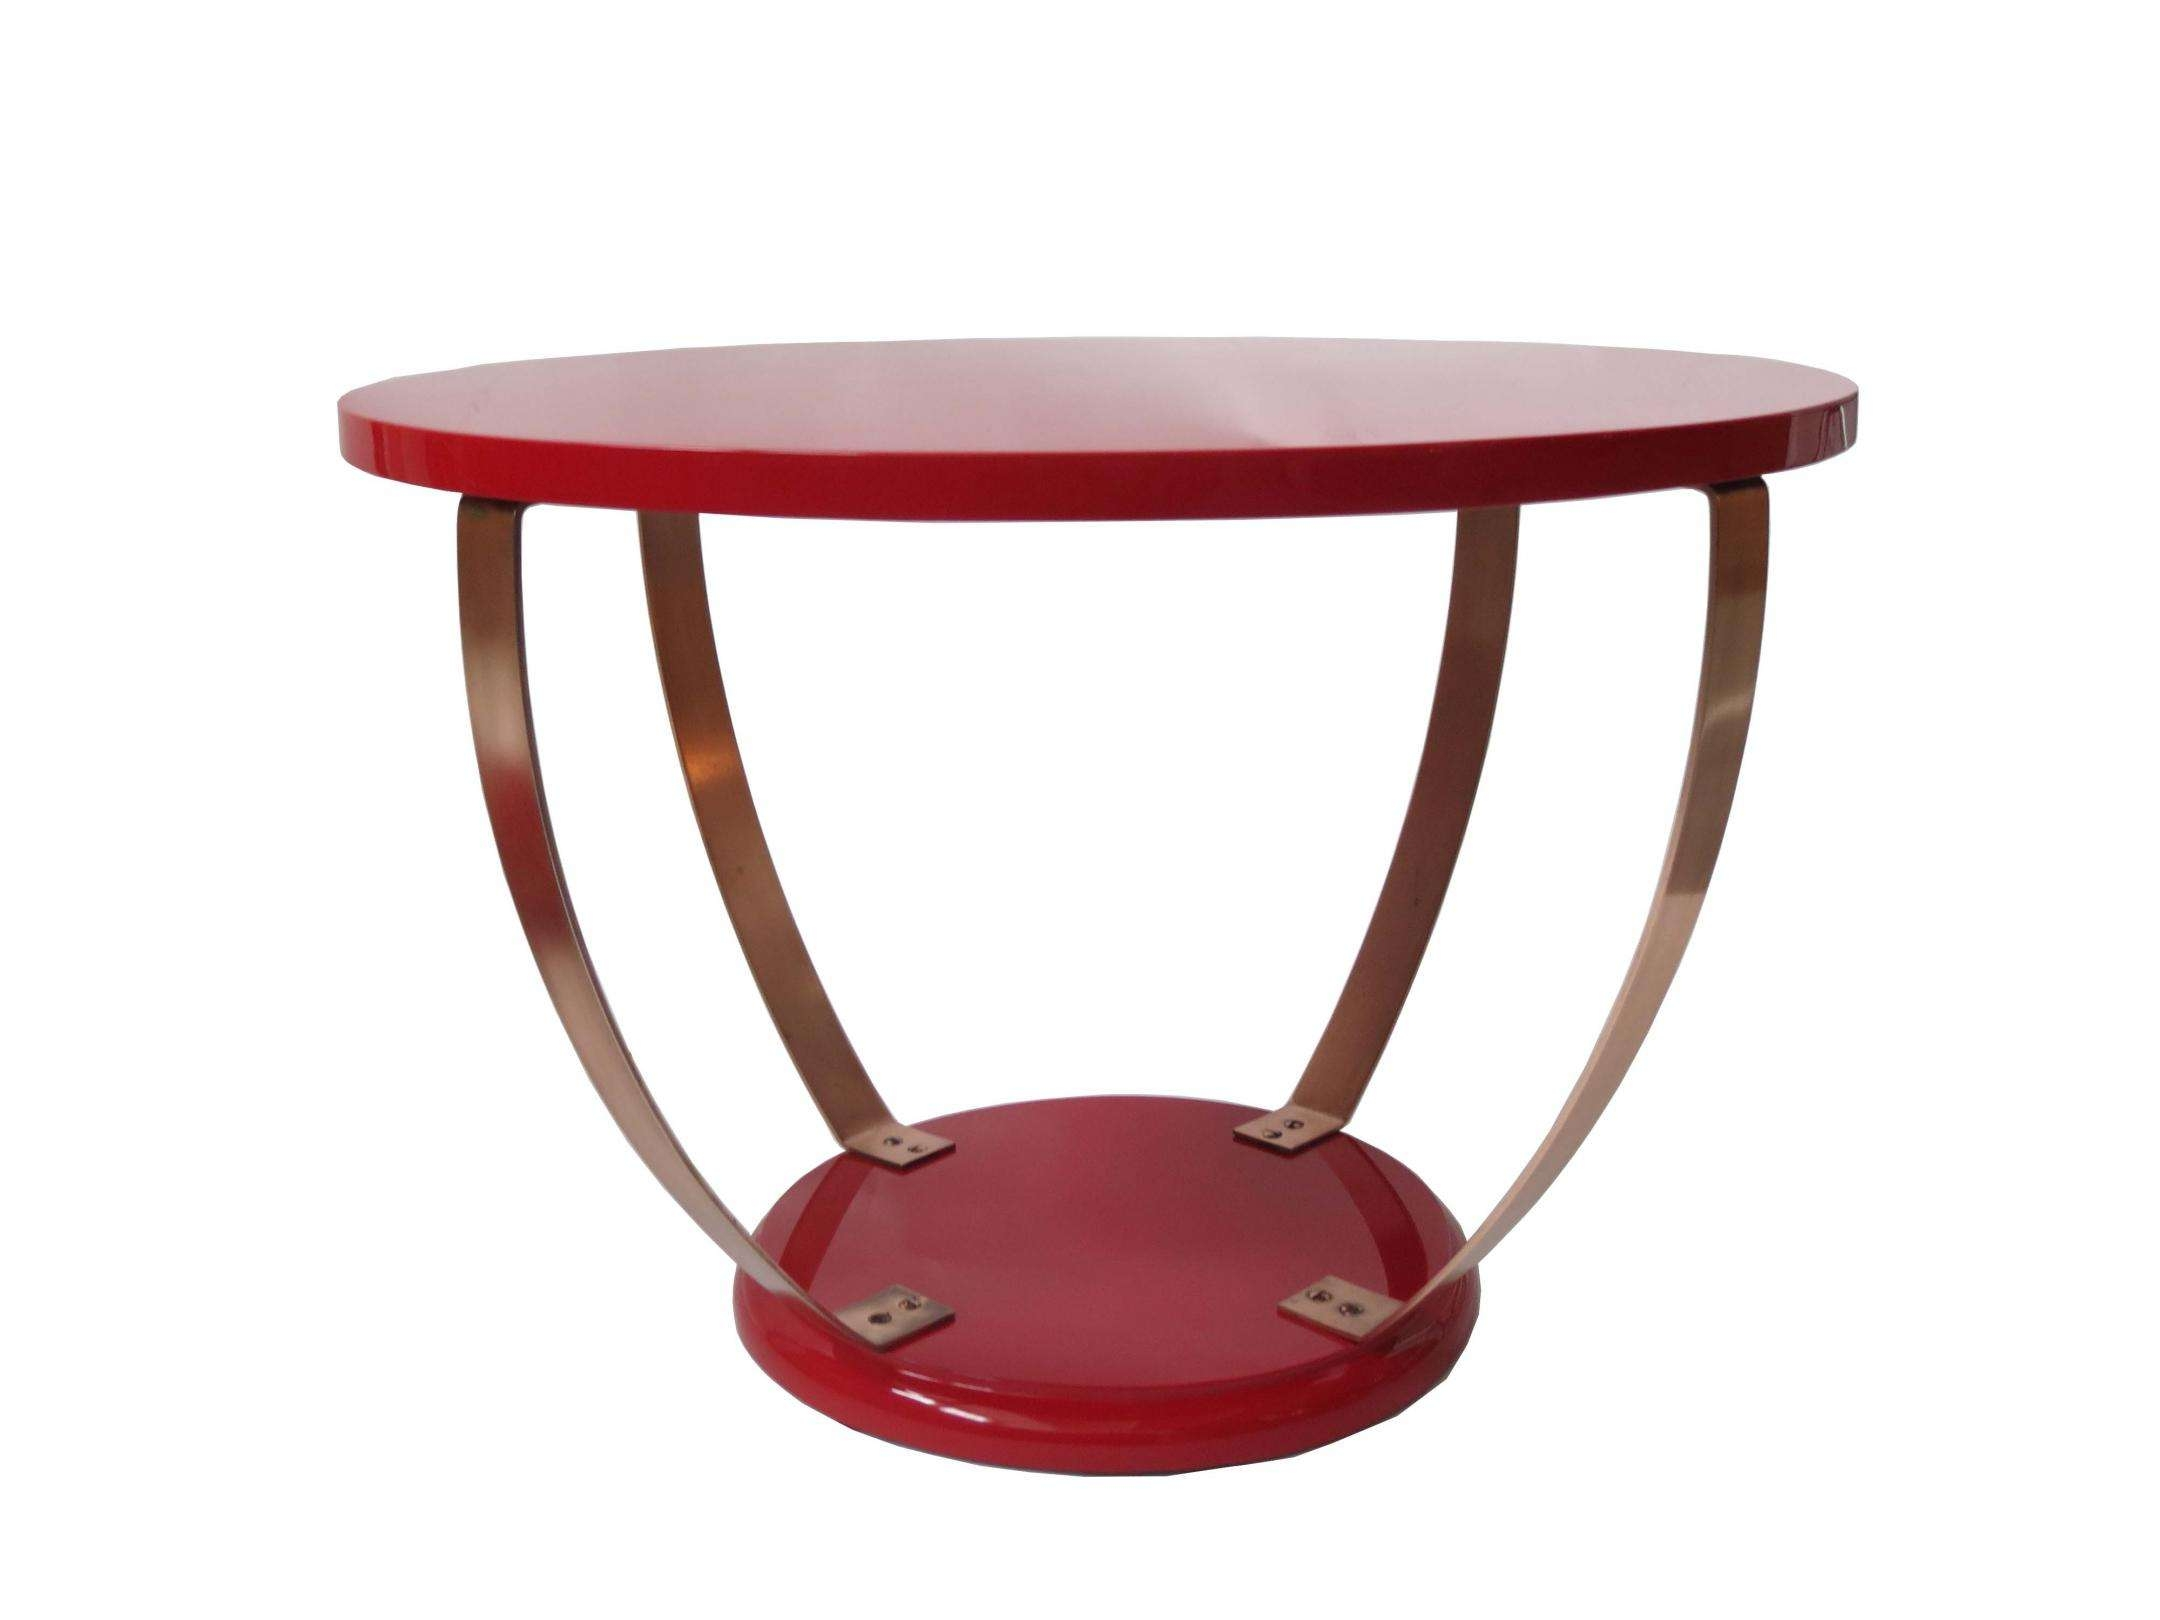 Modernism With Popular Red Gloss Coffee Tables (View 15 of 20)